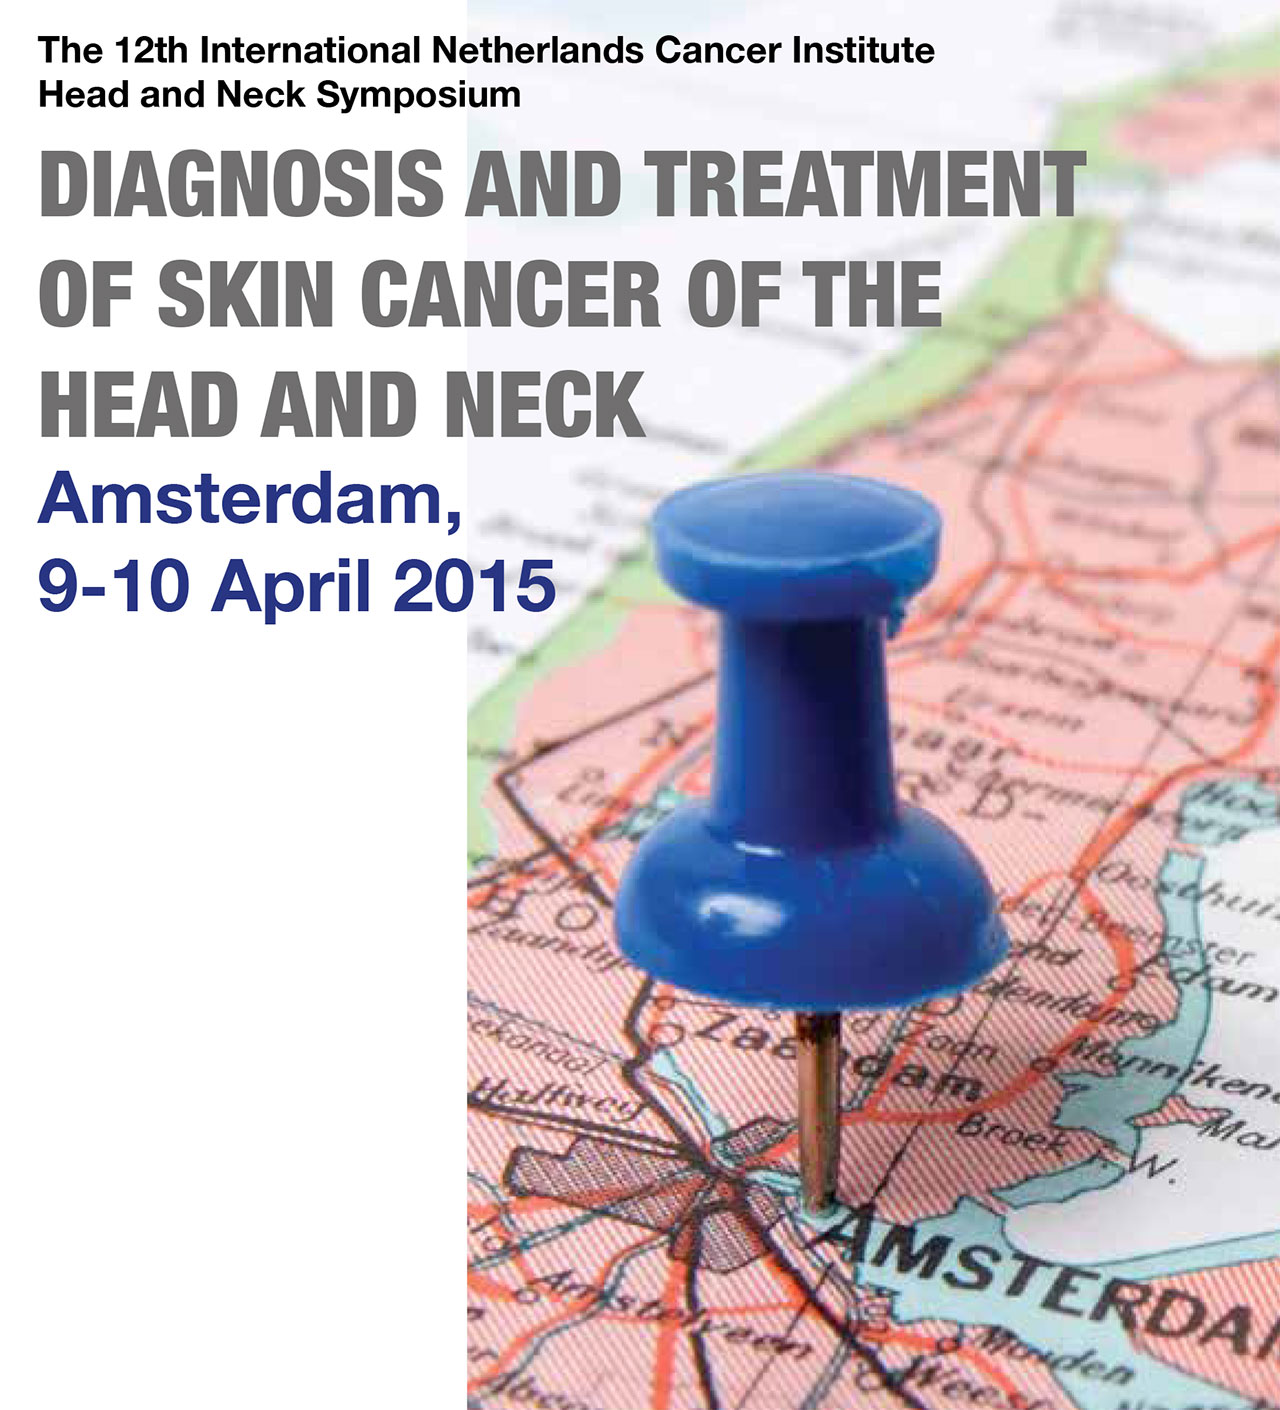 Diagnosis and treatment of skin cancer of head and neck